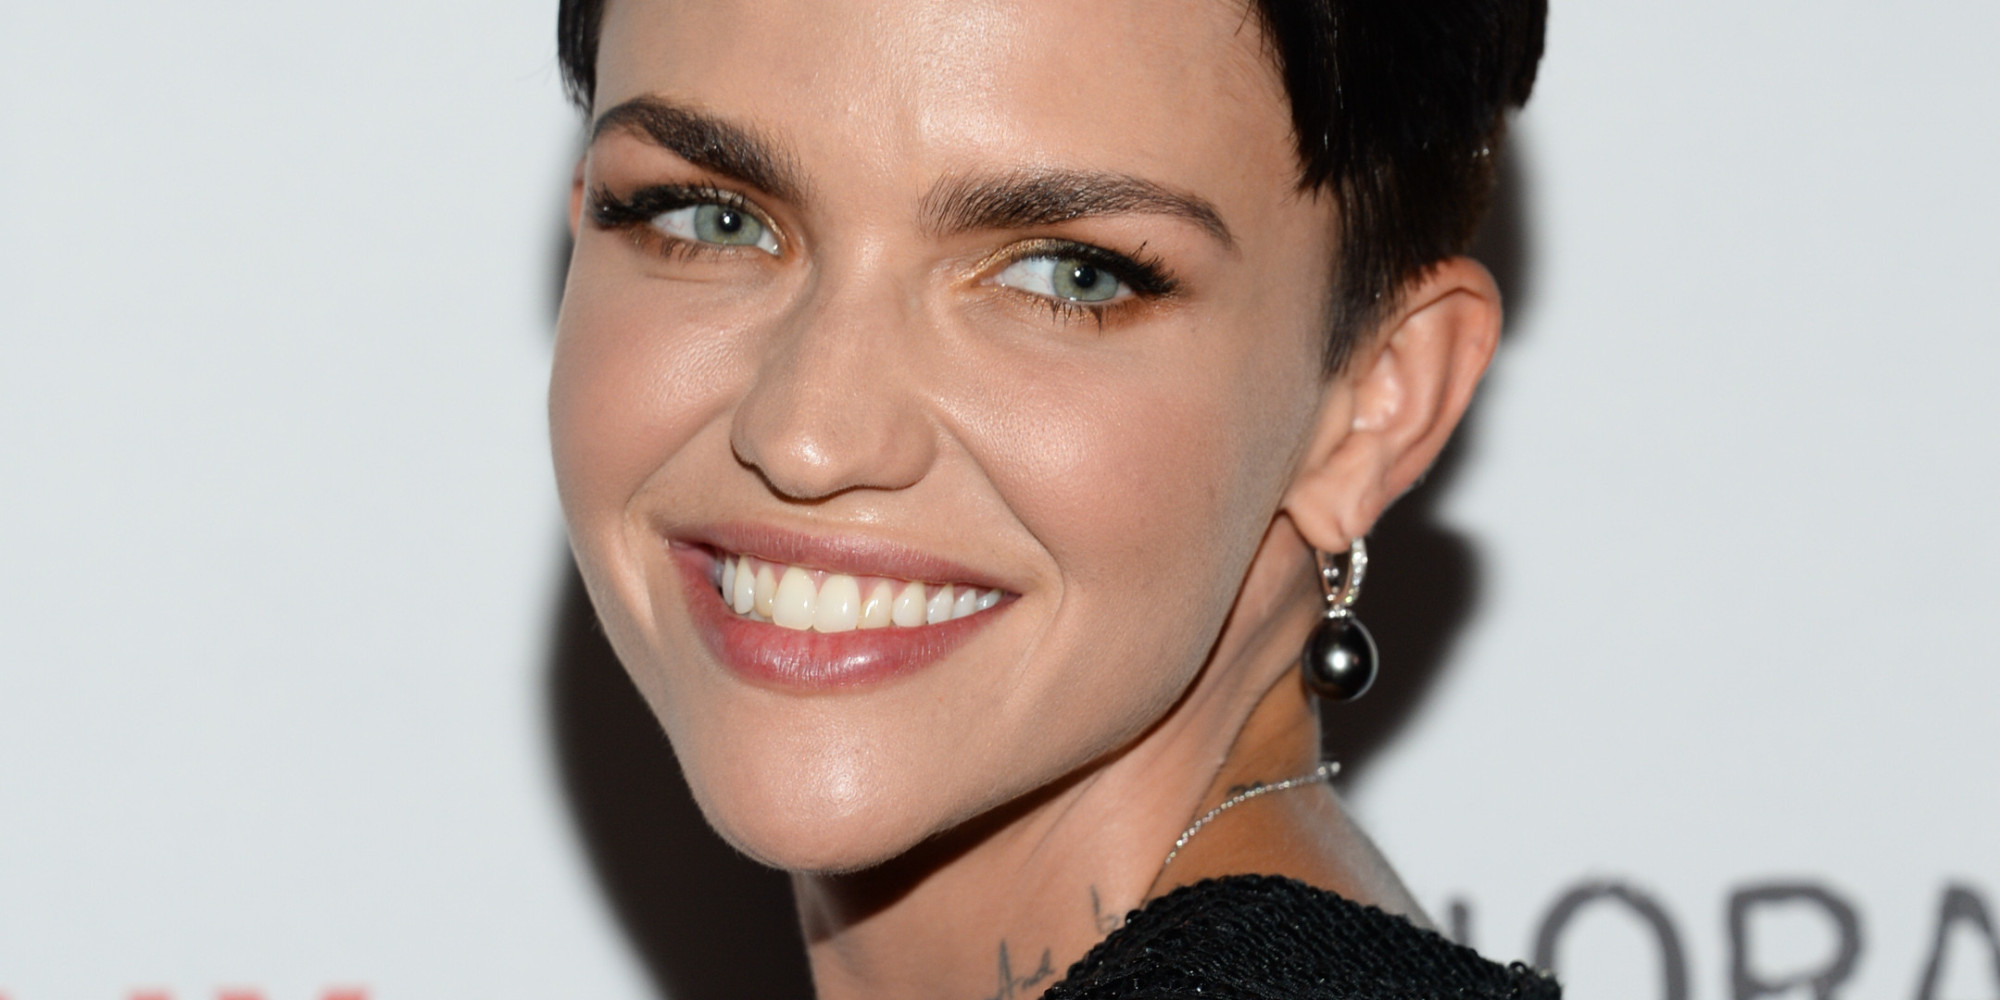 Ruby Rose And Miley Cyrus Identify As Gender Fluid But